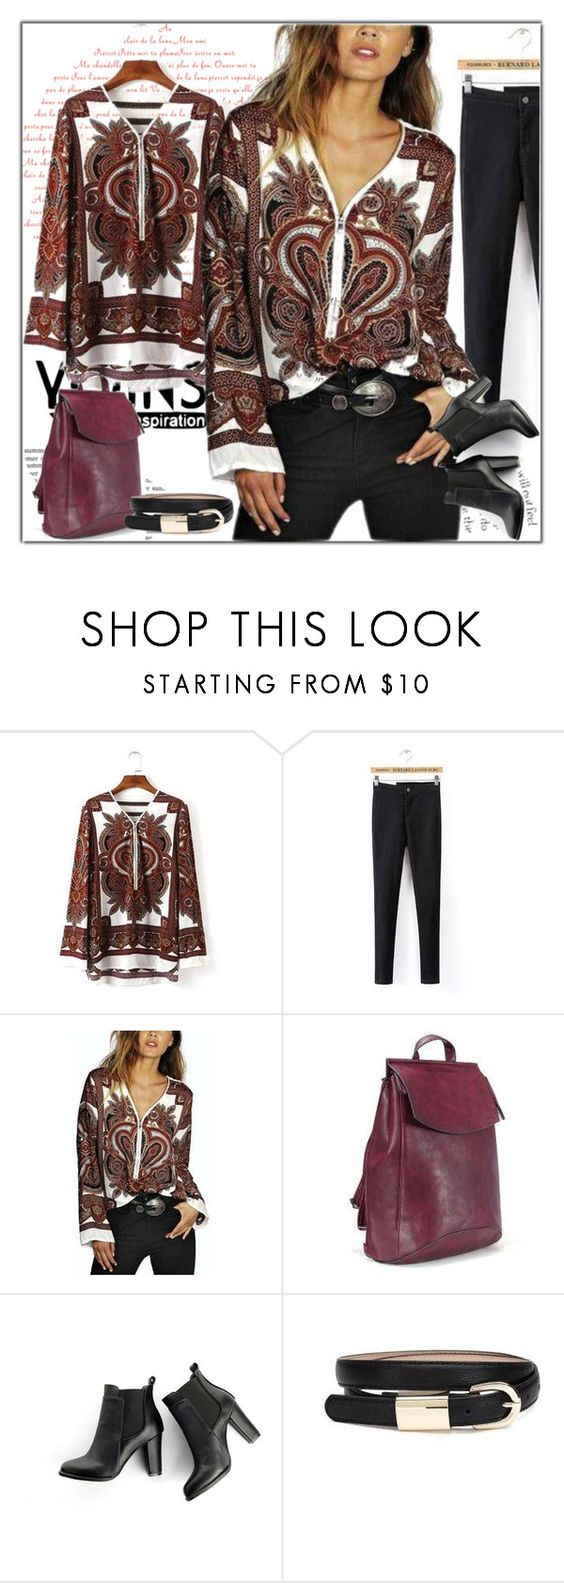 """YOINS.COM"" by ilona-828 ❤ liked on Polyvore featuring MANGO and vintage"